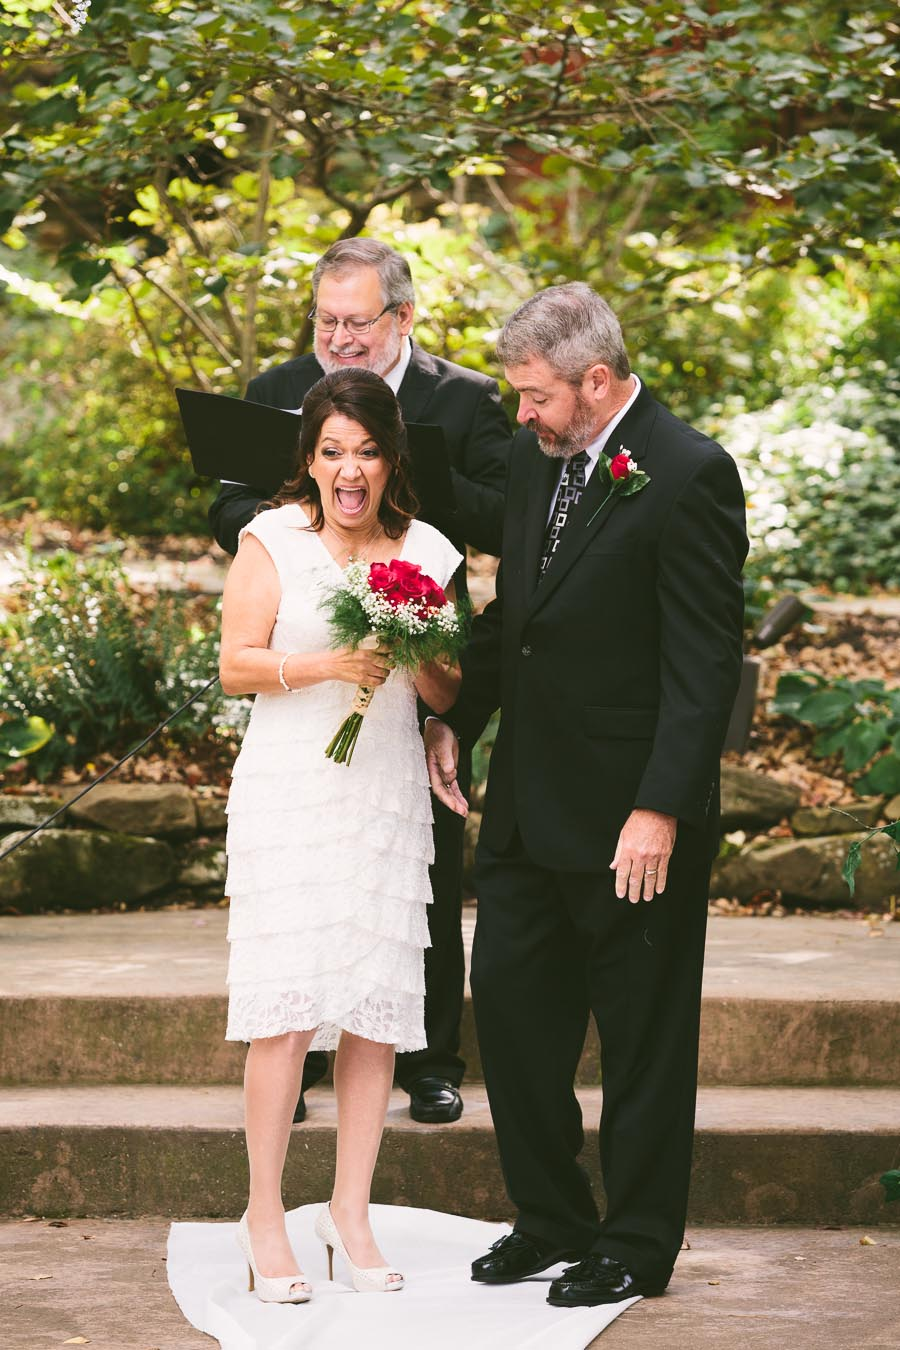 mohican-ohio-wedding-photography-landolls-castle-fall-9.jpg